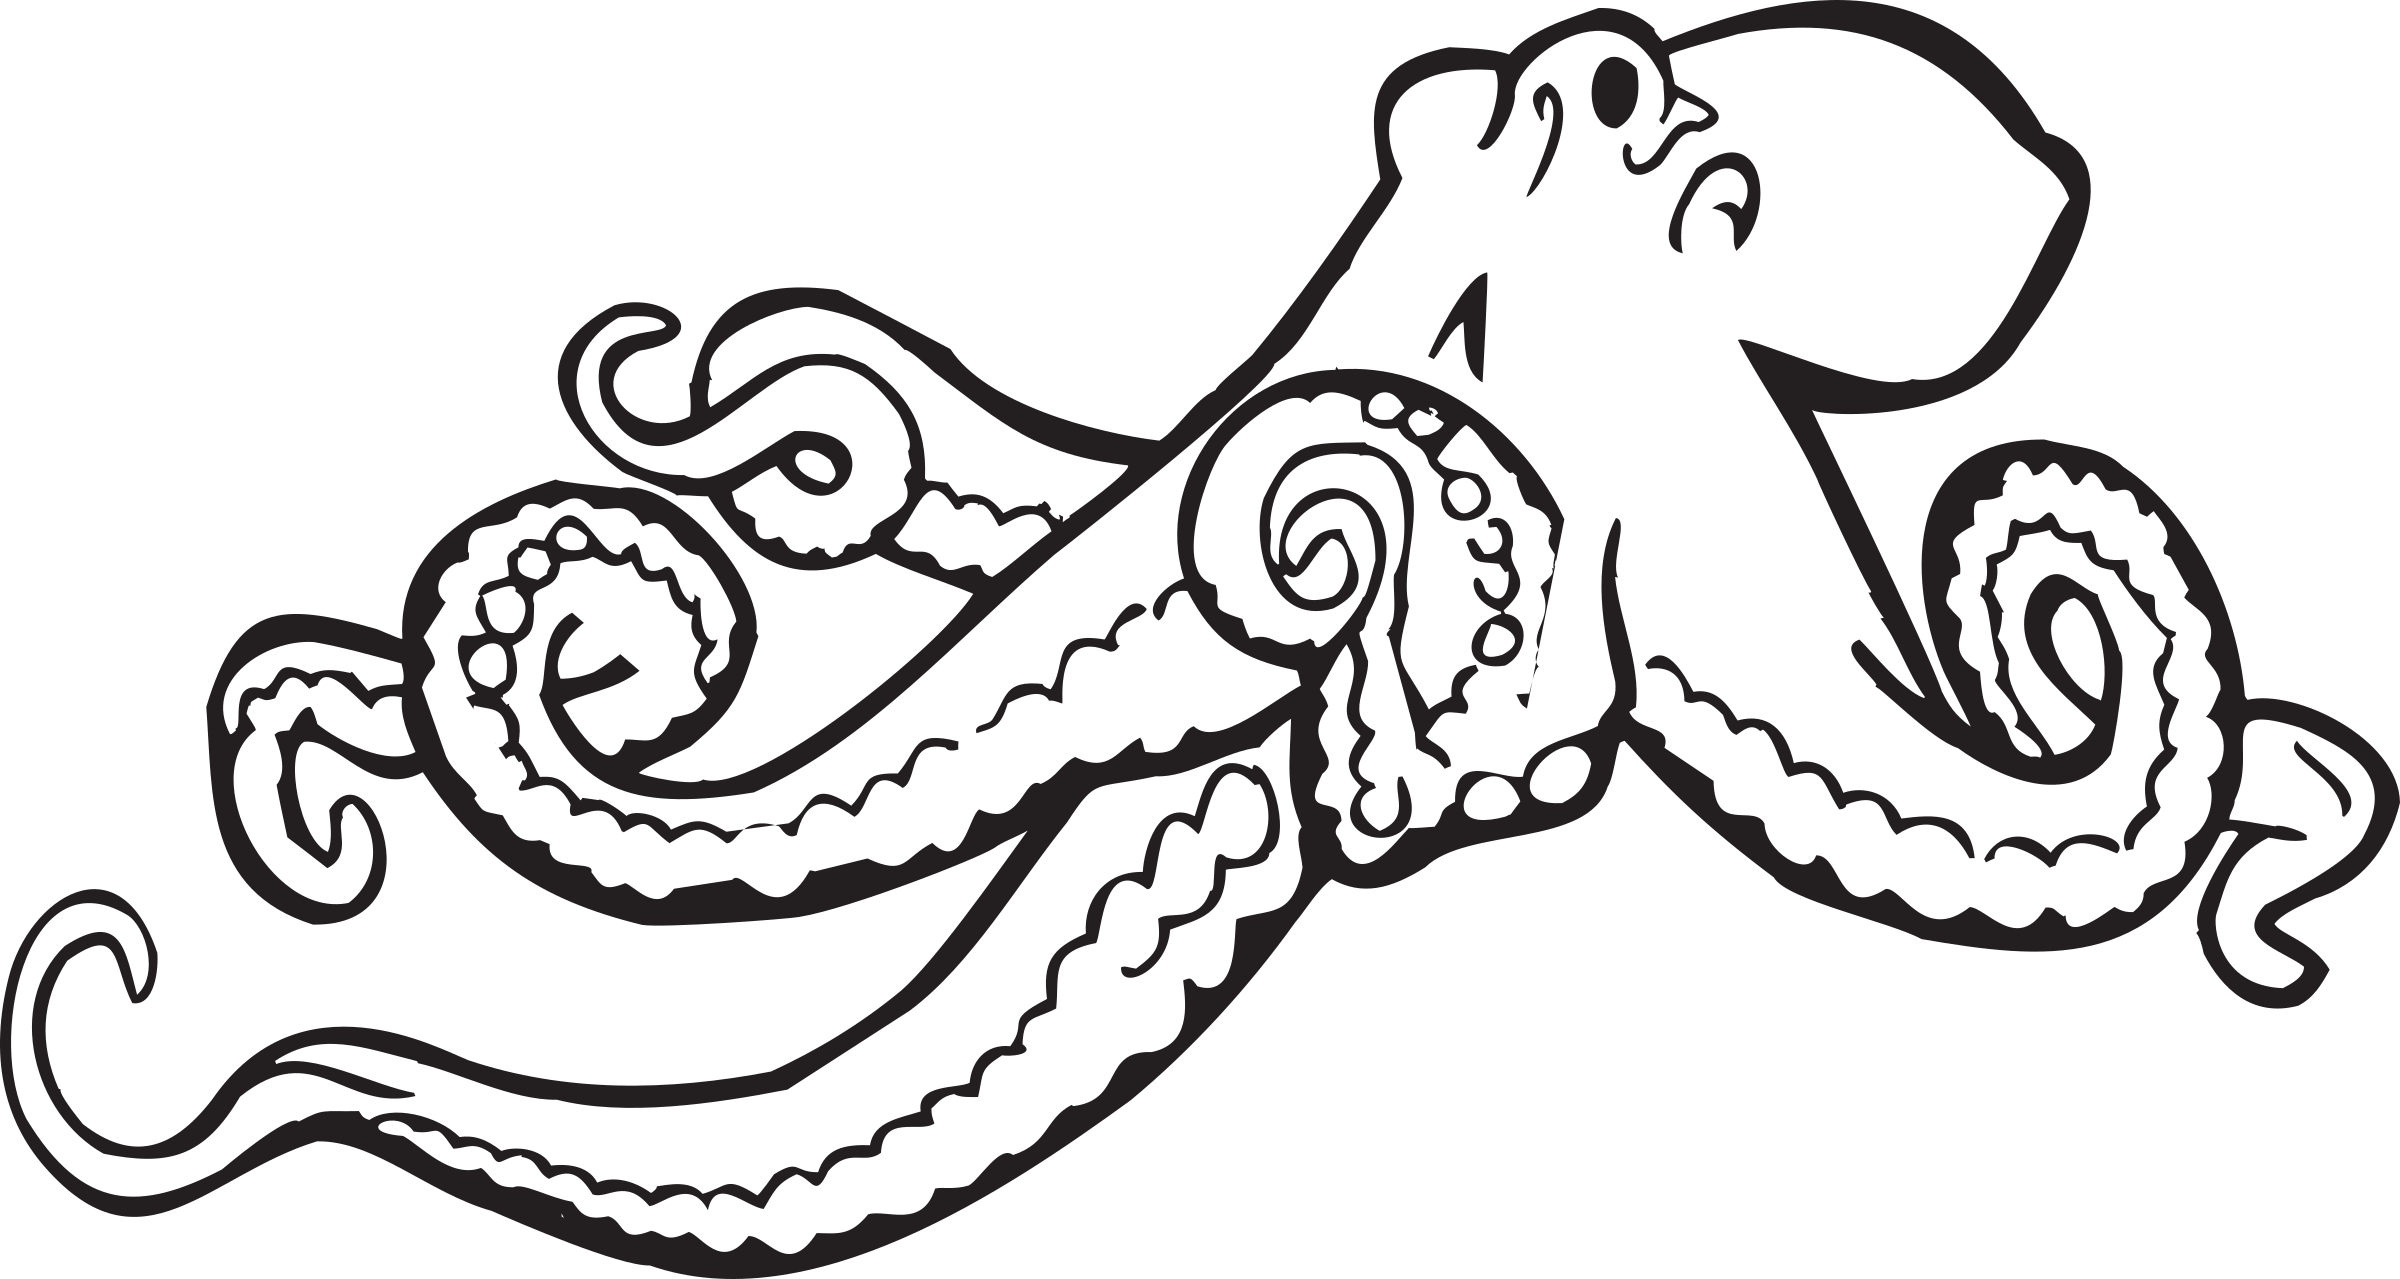 Coloring clipart book. Octopus big image png